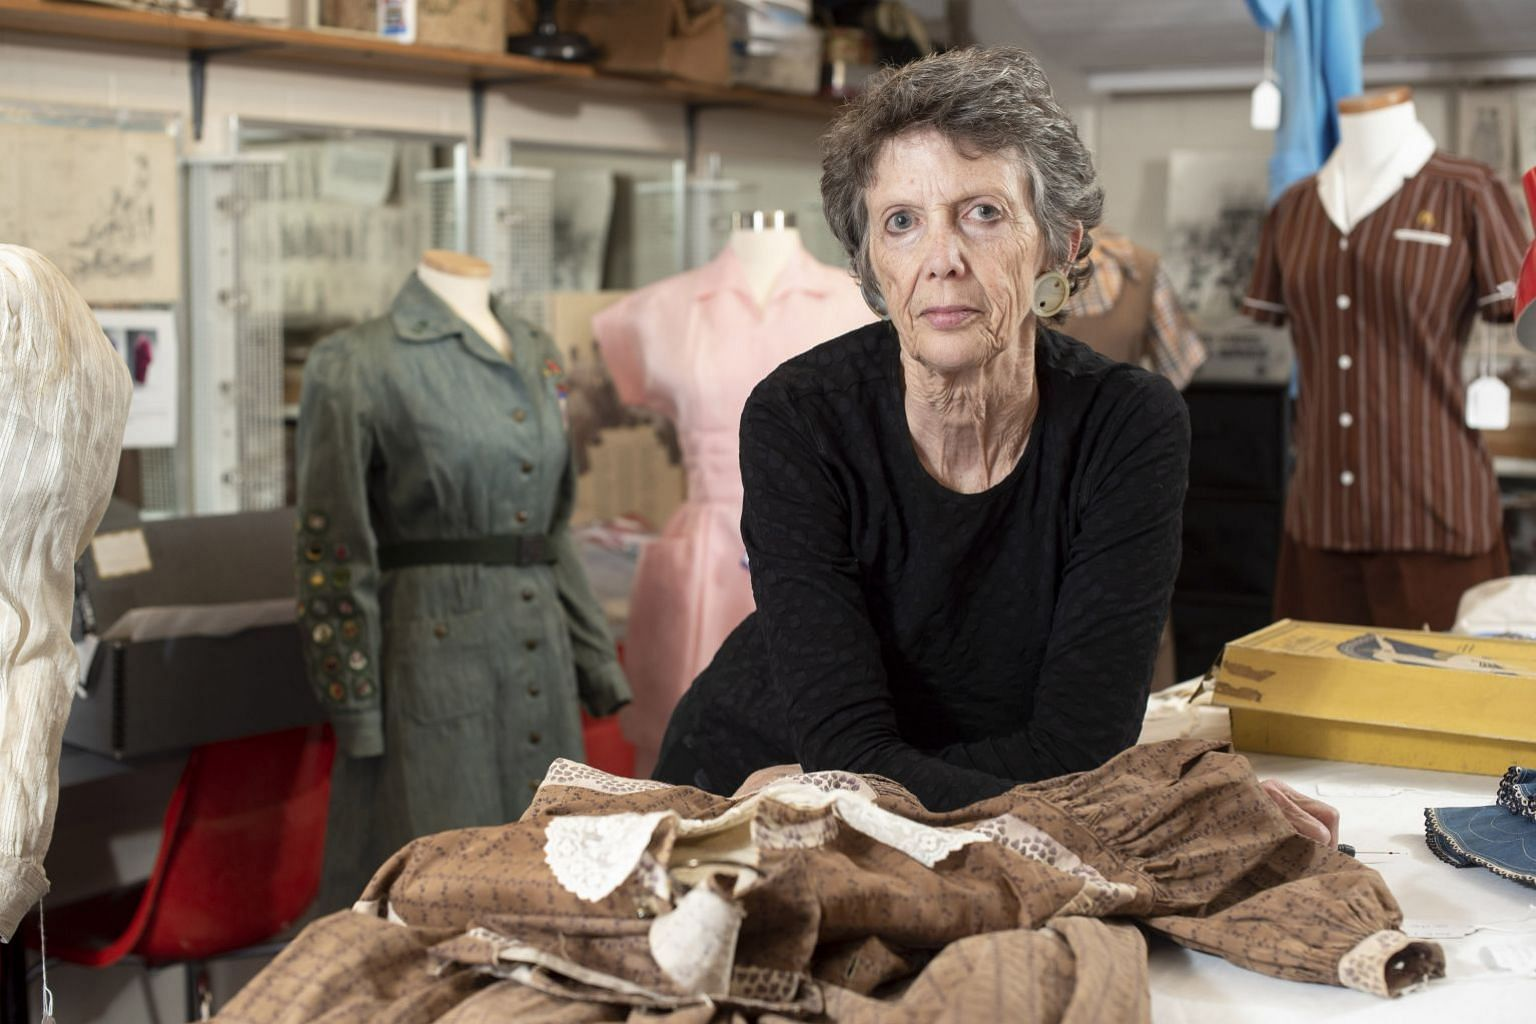 Smith College professor Catherine Smith (above) started the Historic Clothing Collection, which comprises 3,000 articles of everyday women's clothing, including stained aprons and a Girl Scout uniform worn by Sylvia Plath, an American poet and writer.